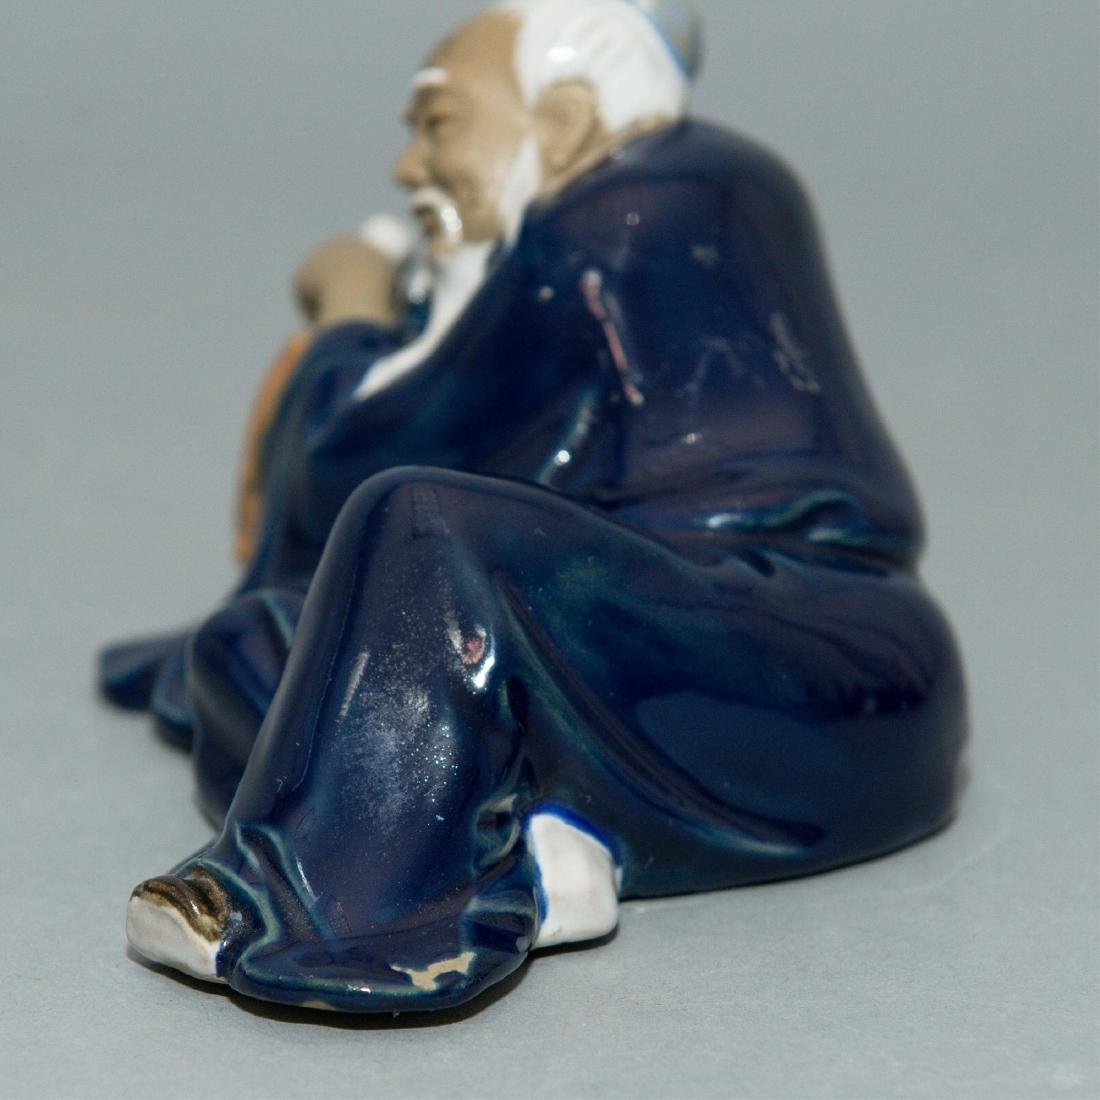 CHINESE MUDMAN FIGURINE, MID-20TH CENTURY - 3